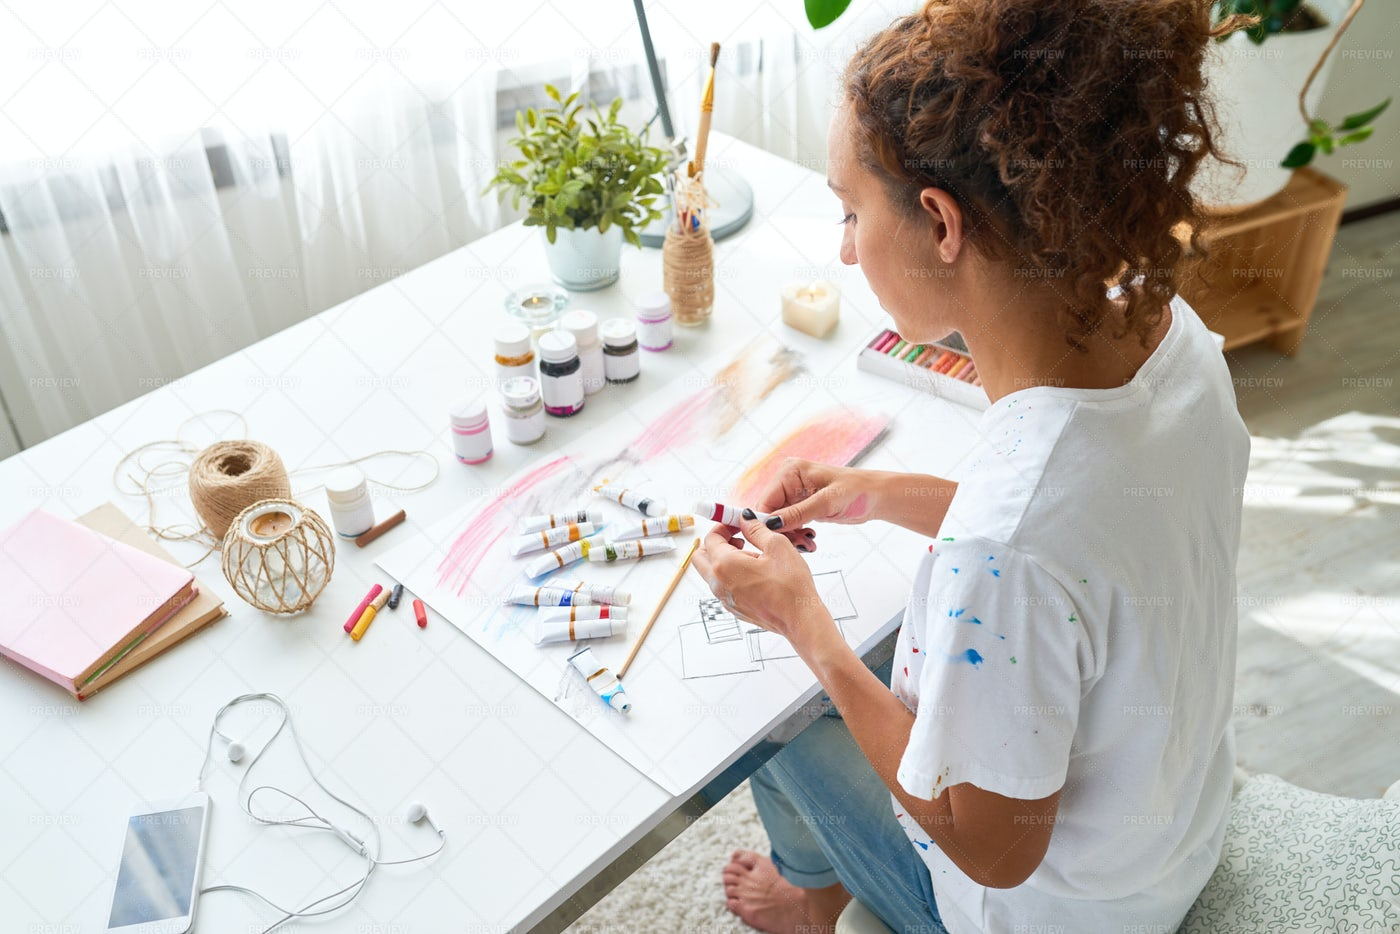 Creative Young Woman Painting With...: Stock Photos